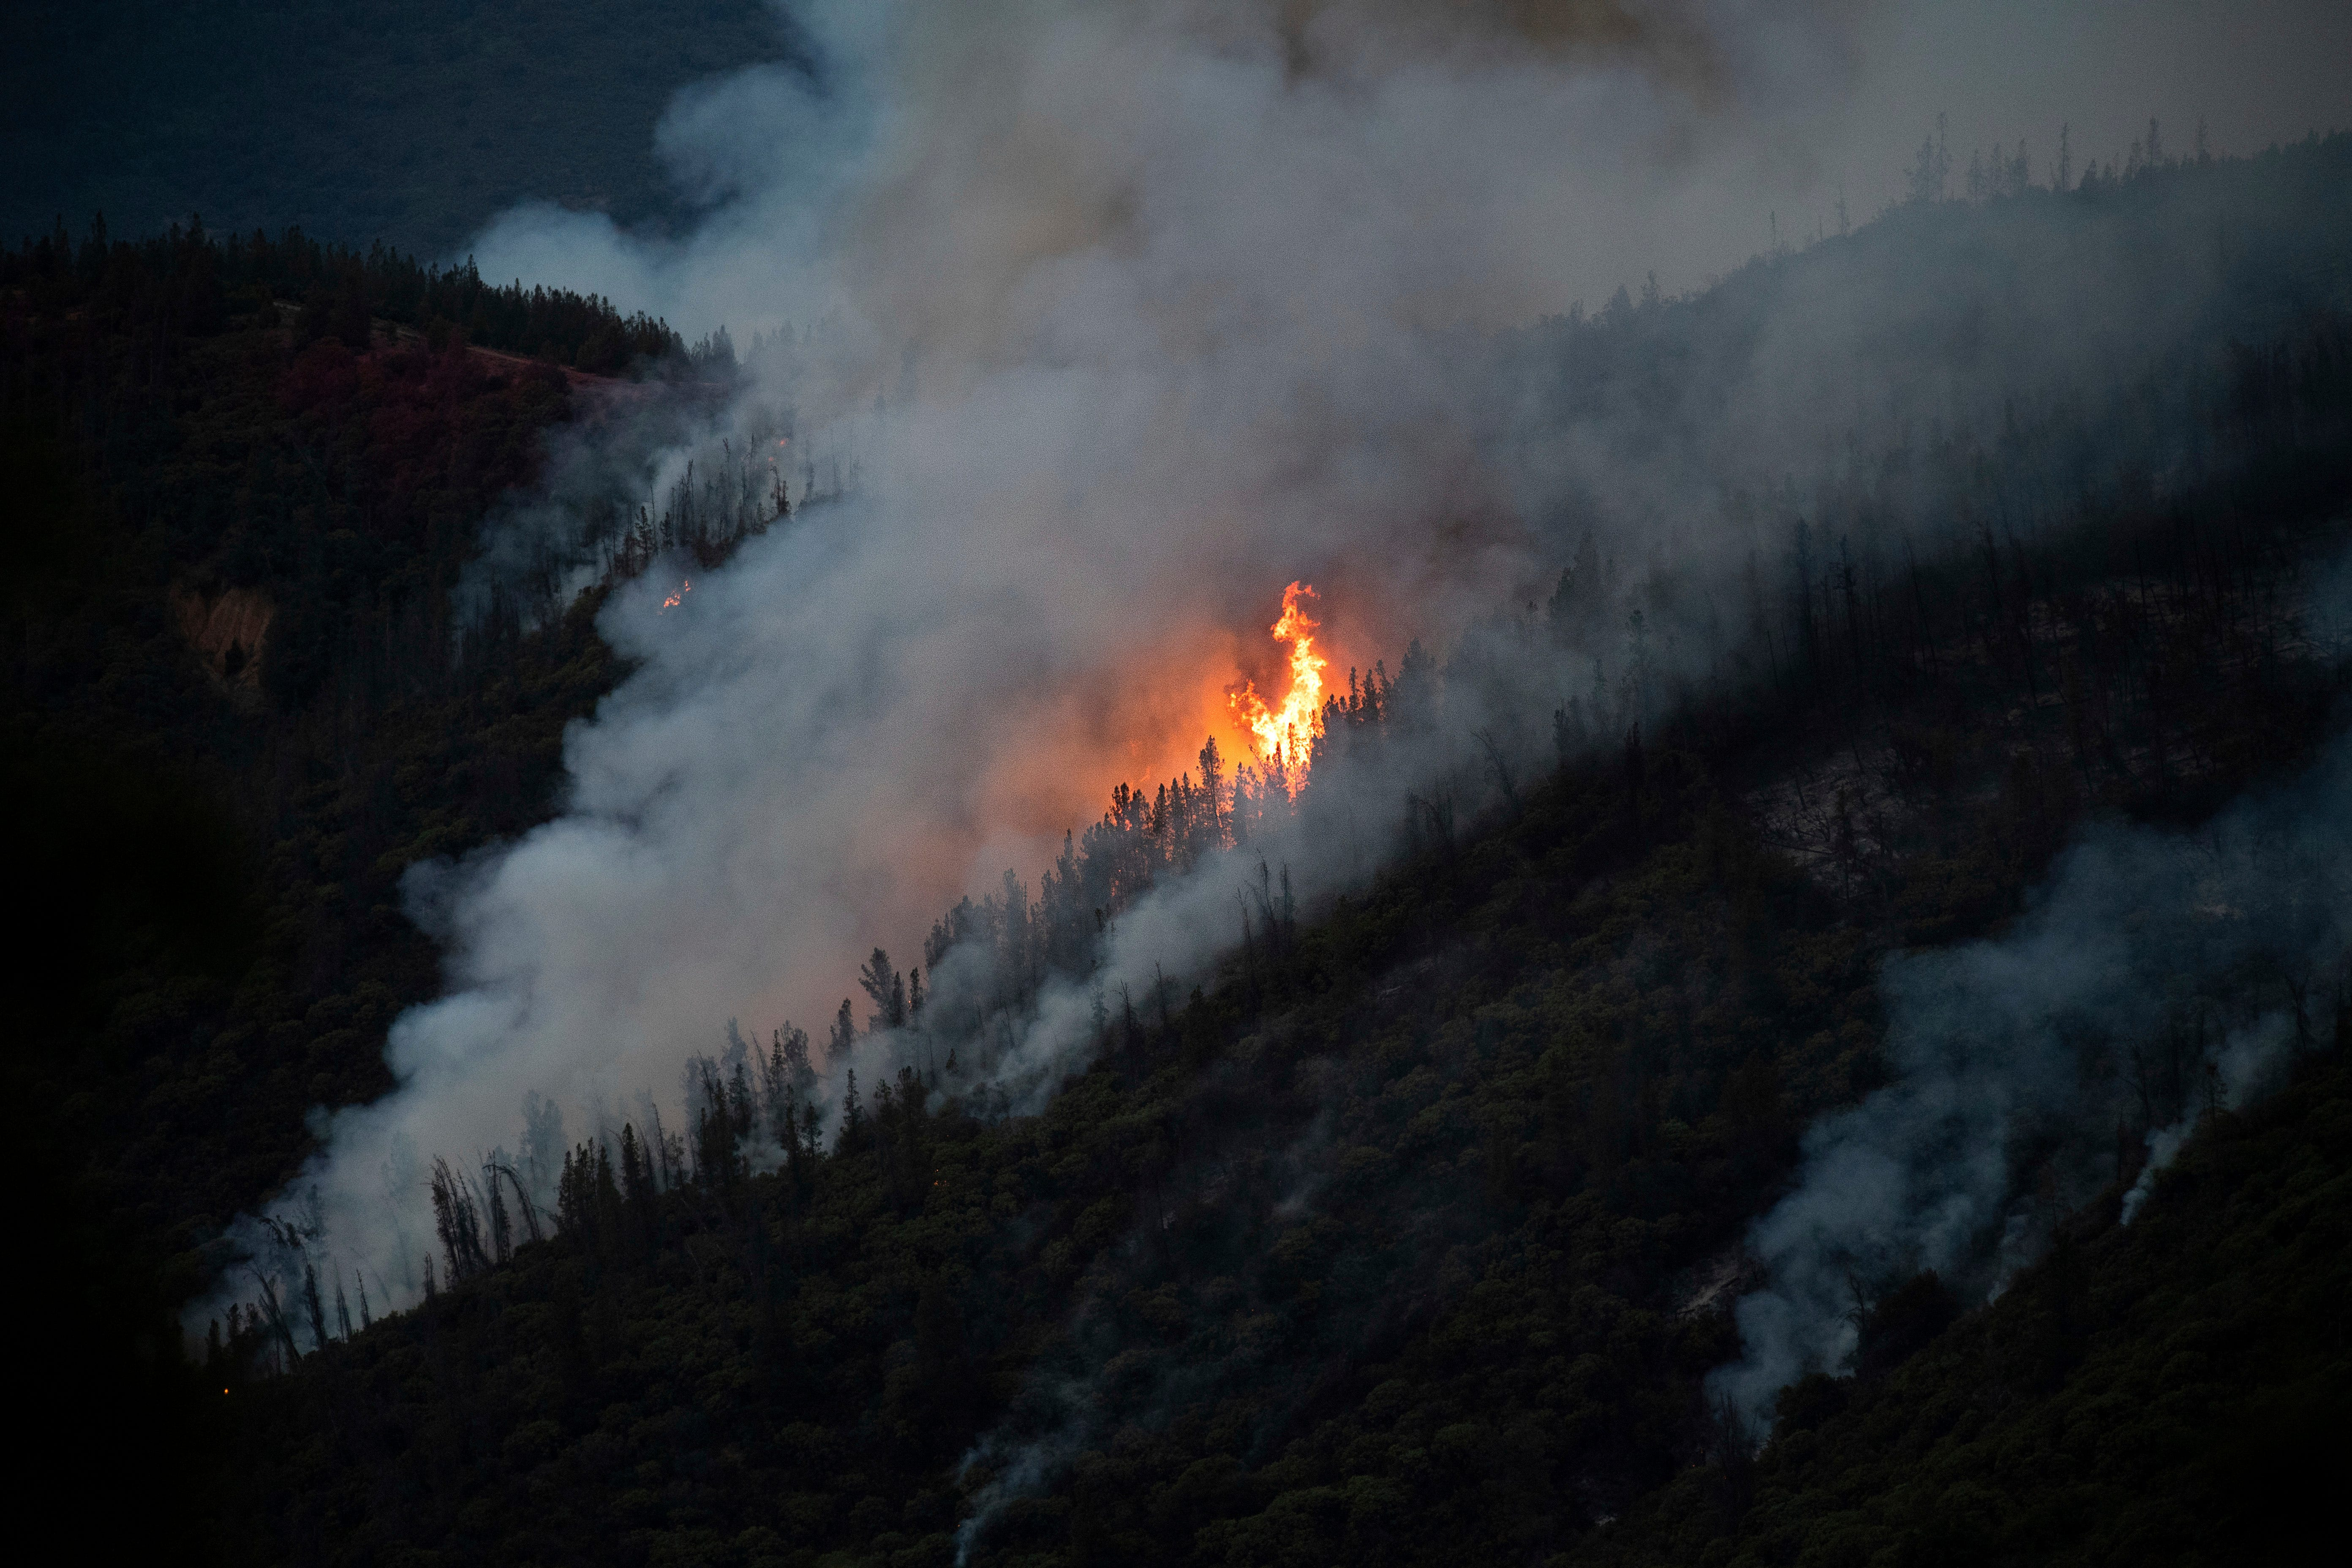 'The smoke was horrible': Hot, dry weather hampers crews battling wildfire near Yosemite